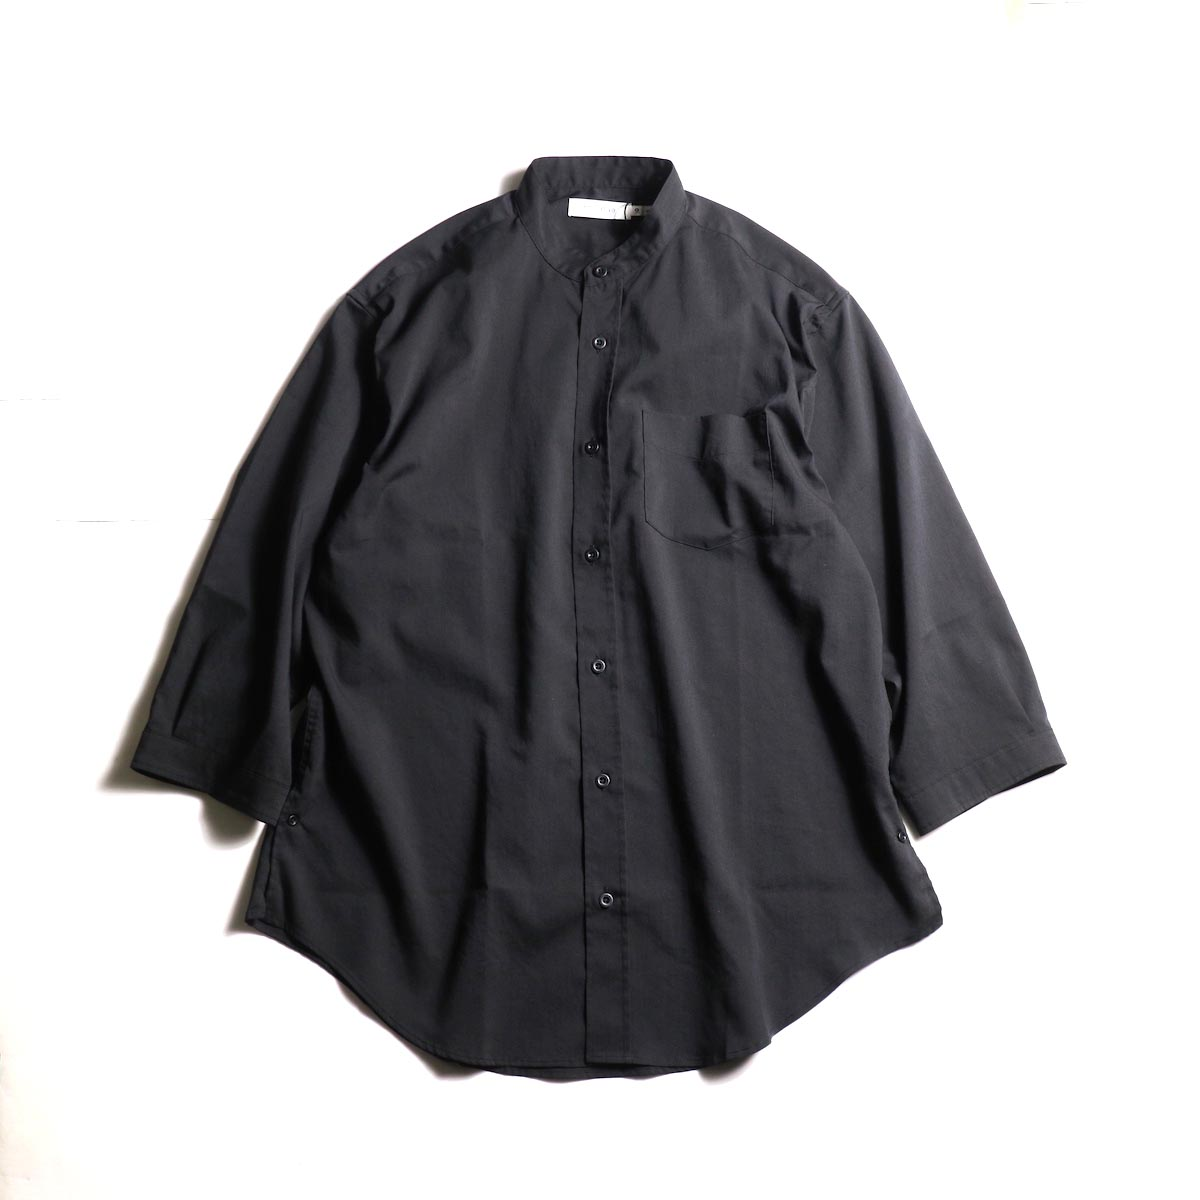 nonnative / OFFICER SHIRT Q/S RELAXED FIT P/L WEATHER STRETCH COOLMAX® (Black)